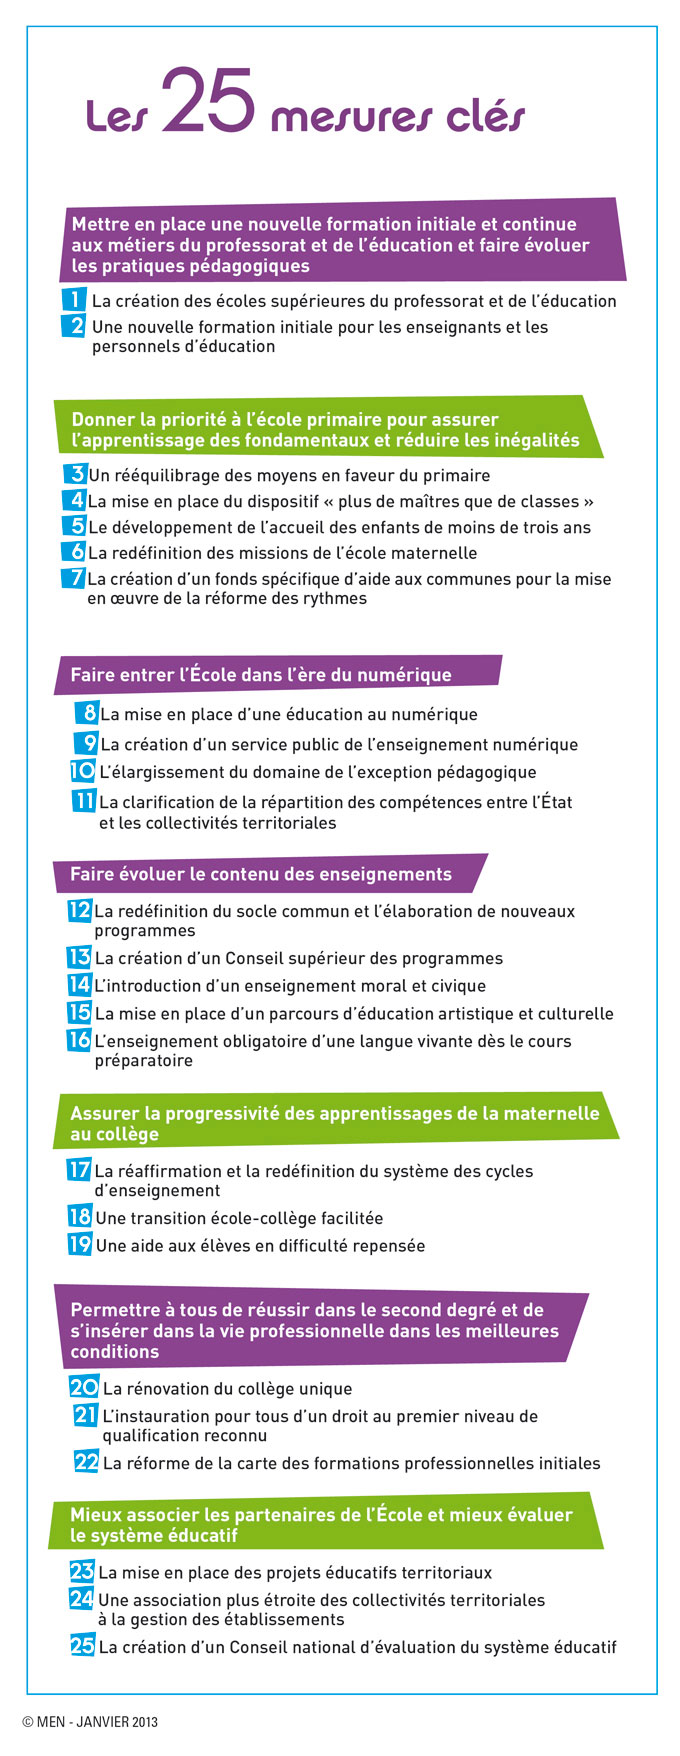 Loi-refondation-25_mesures_cles